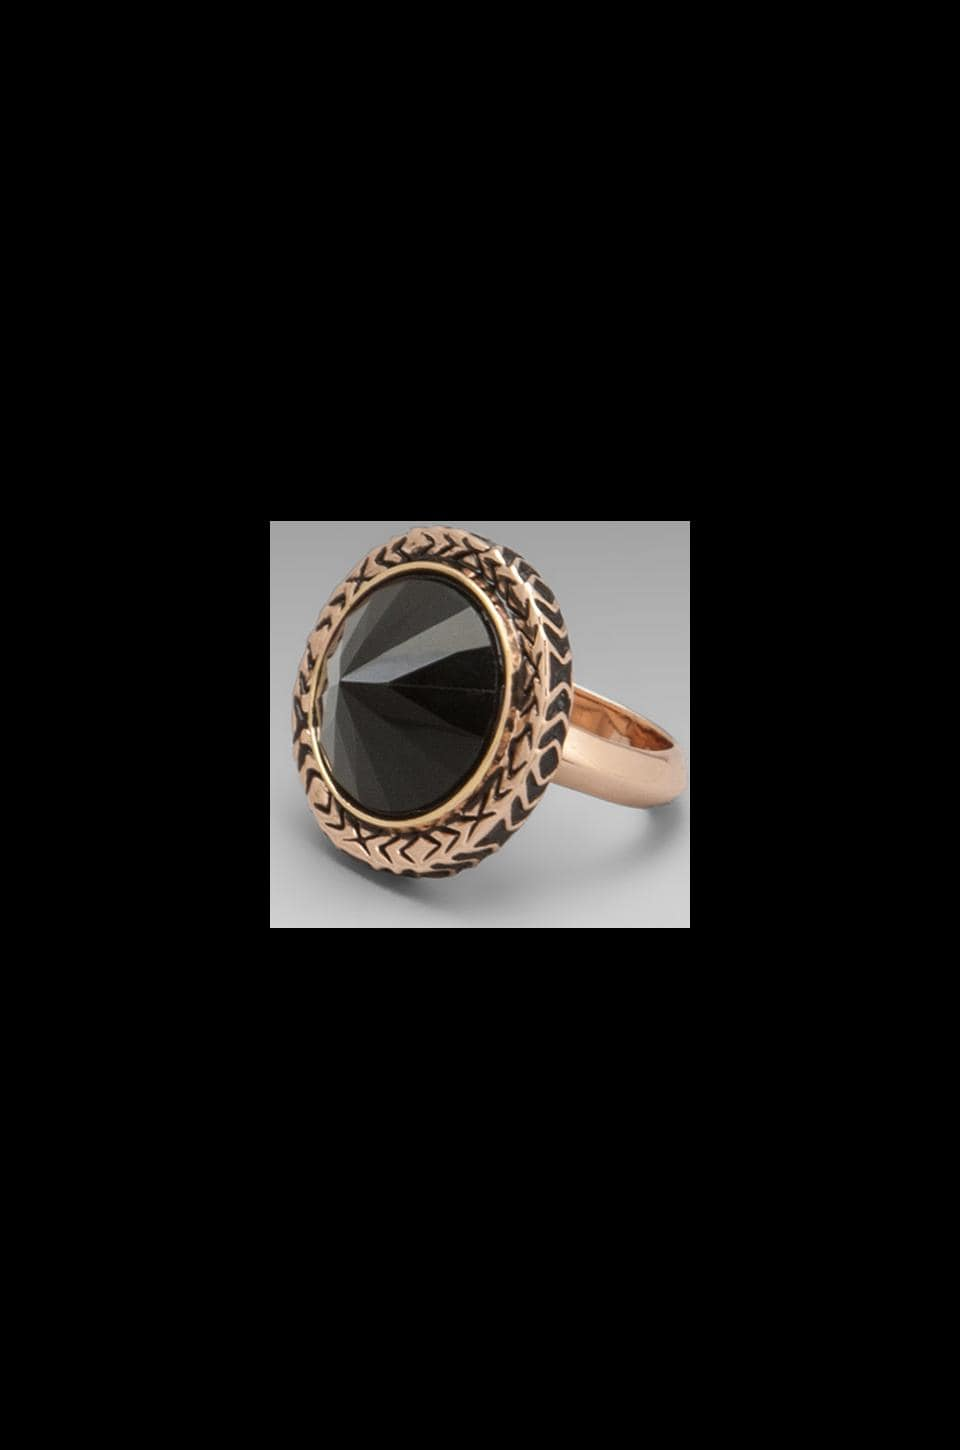 House of Harlow Scry Stone Ring in Rosegold